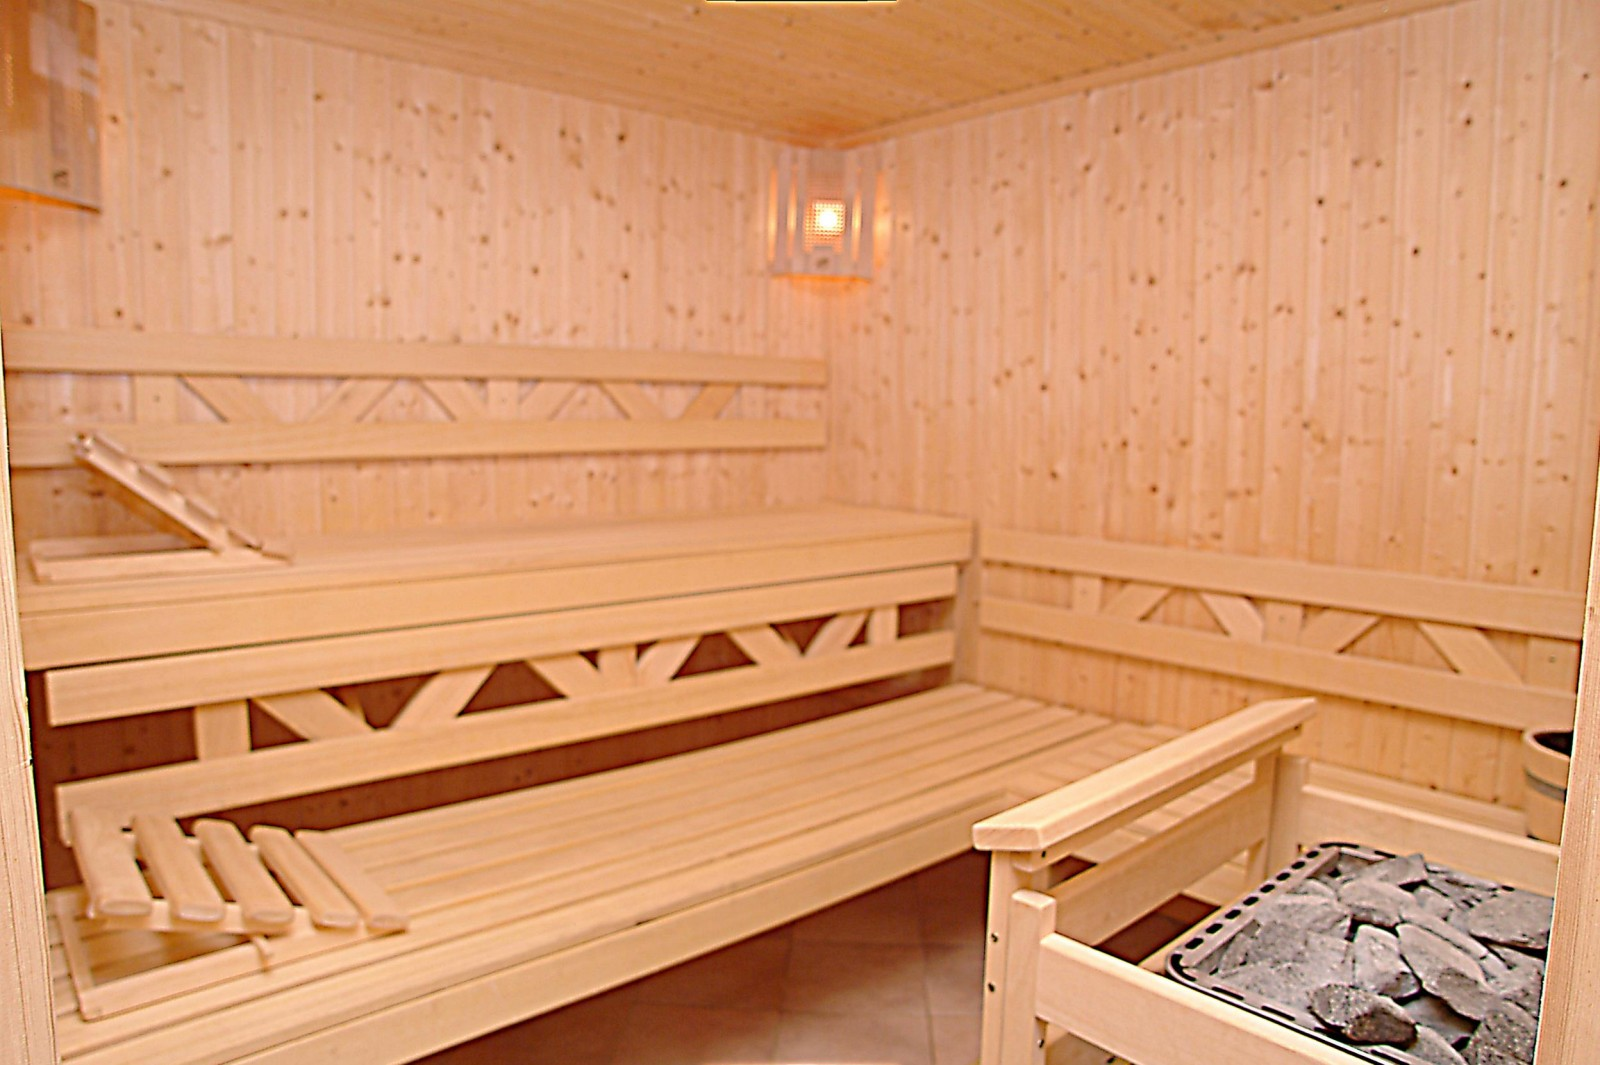 foto 08 sauna pension arnika bild nr 15 album pension arnika fotos vom haus und den zimmer. Black Bedroom Furniture Sets. Home Design Ideas